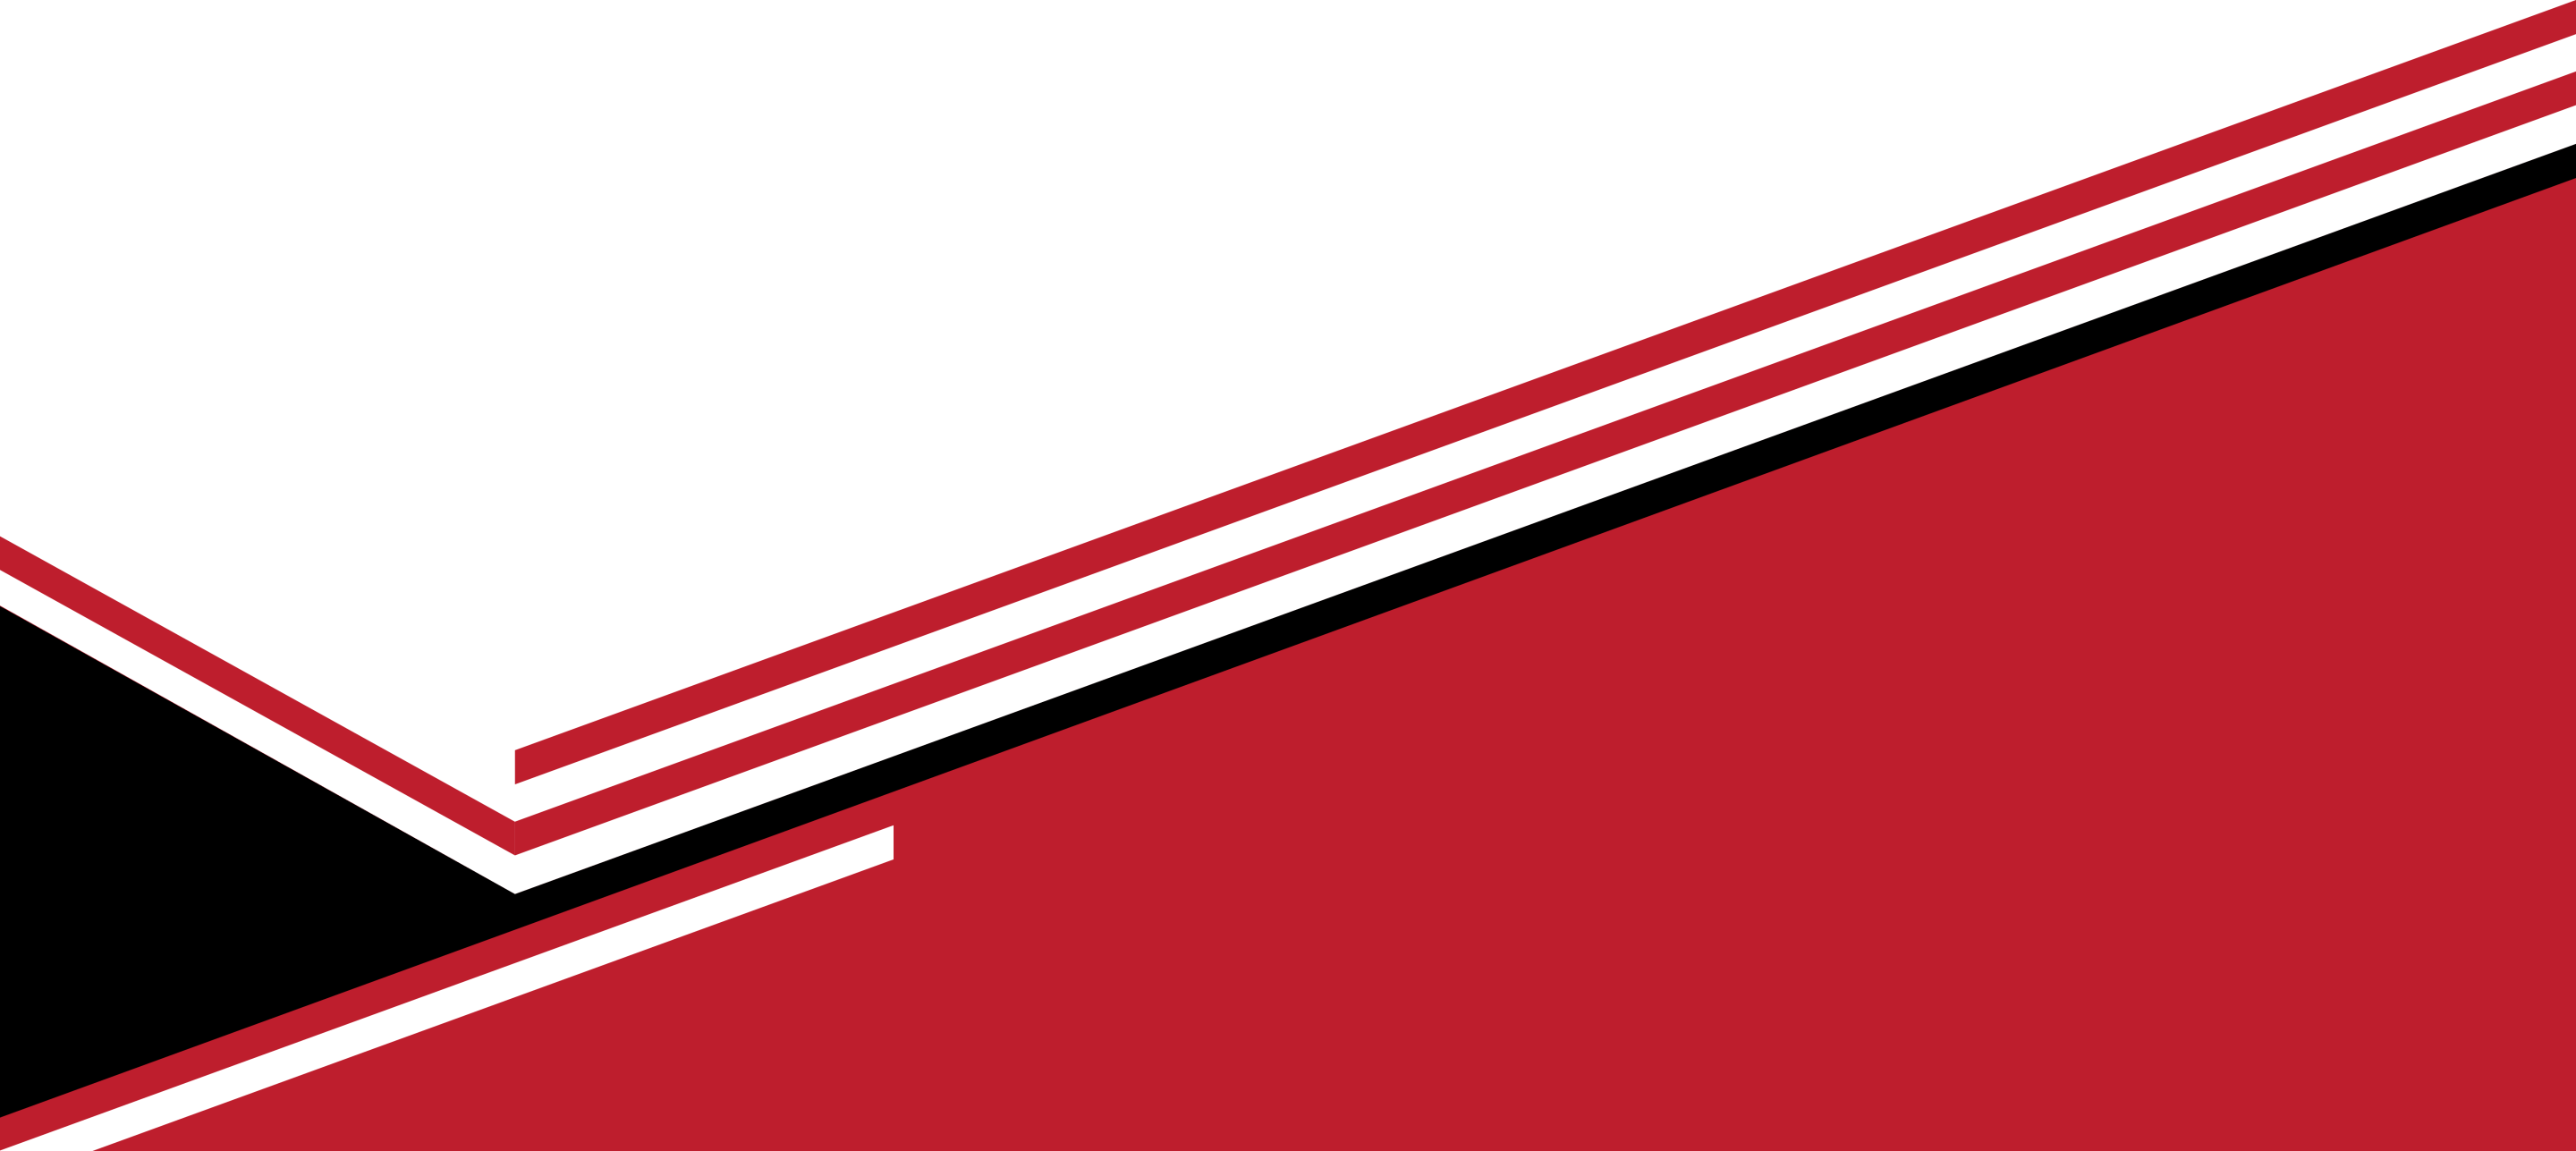 Red line png. Redline collision complete auto